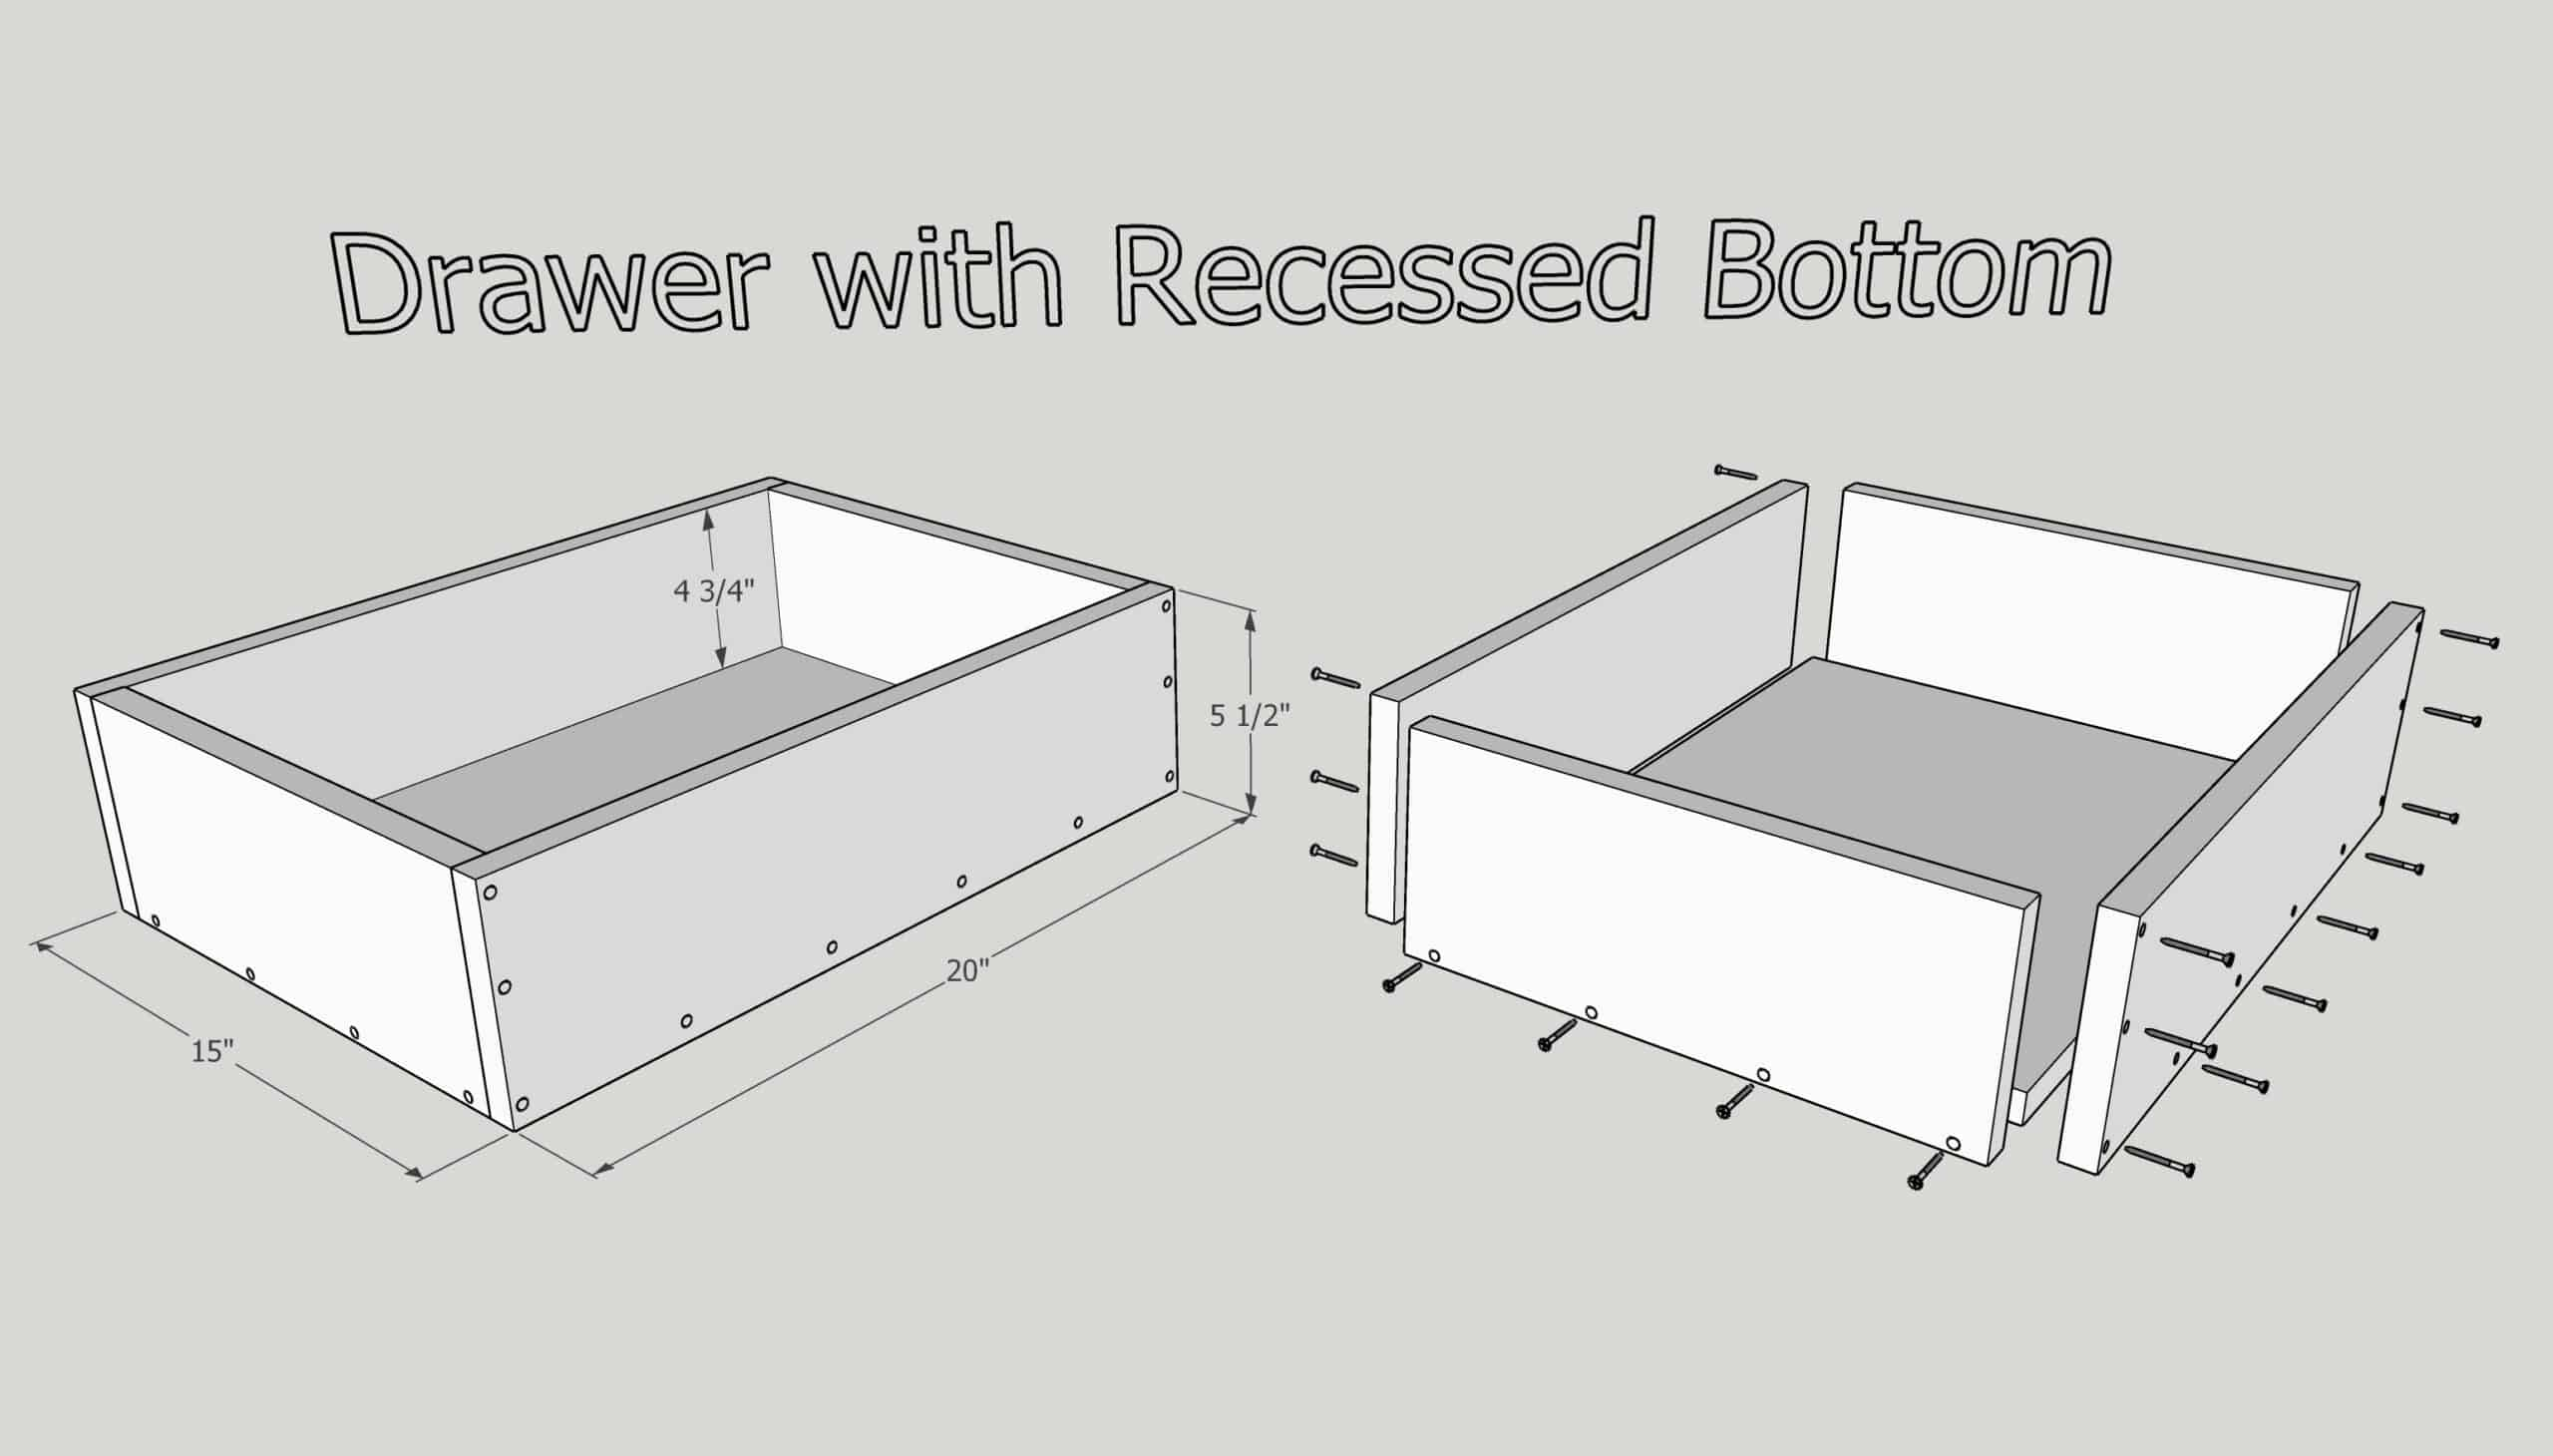 how to make a drawer with a recessed bottom